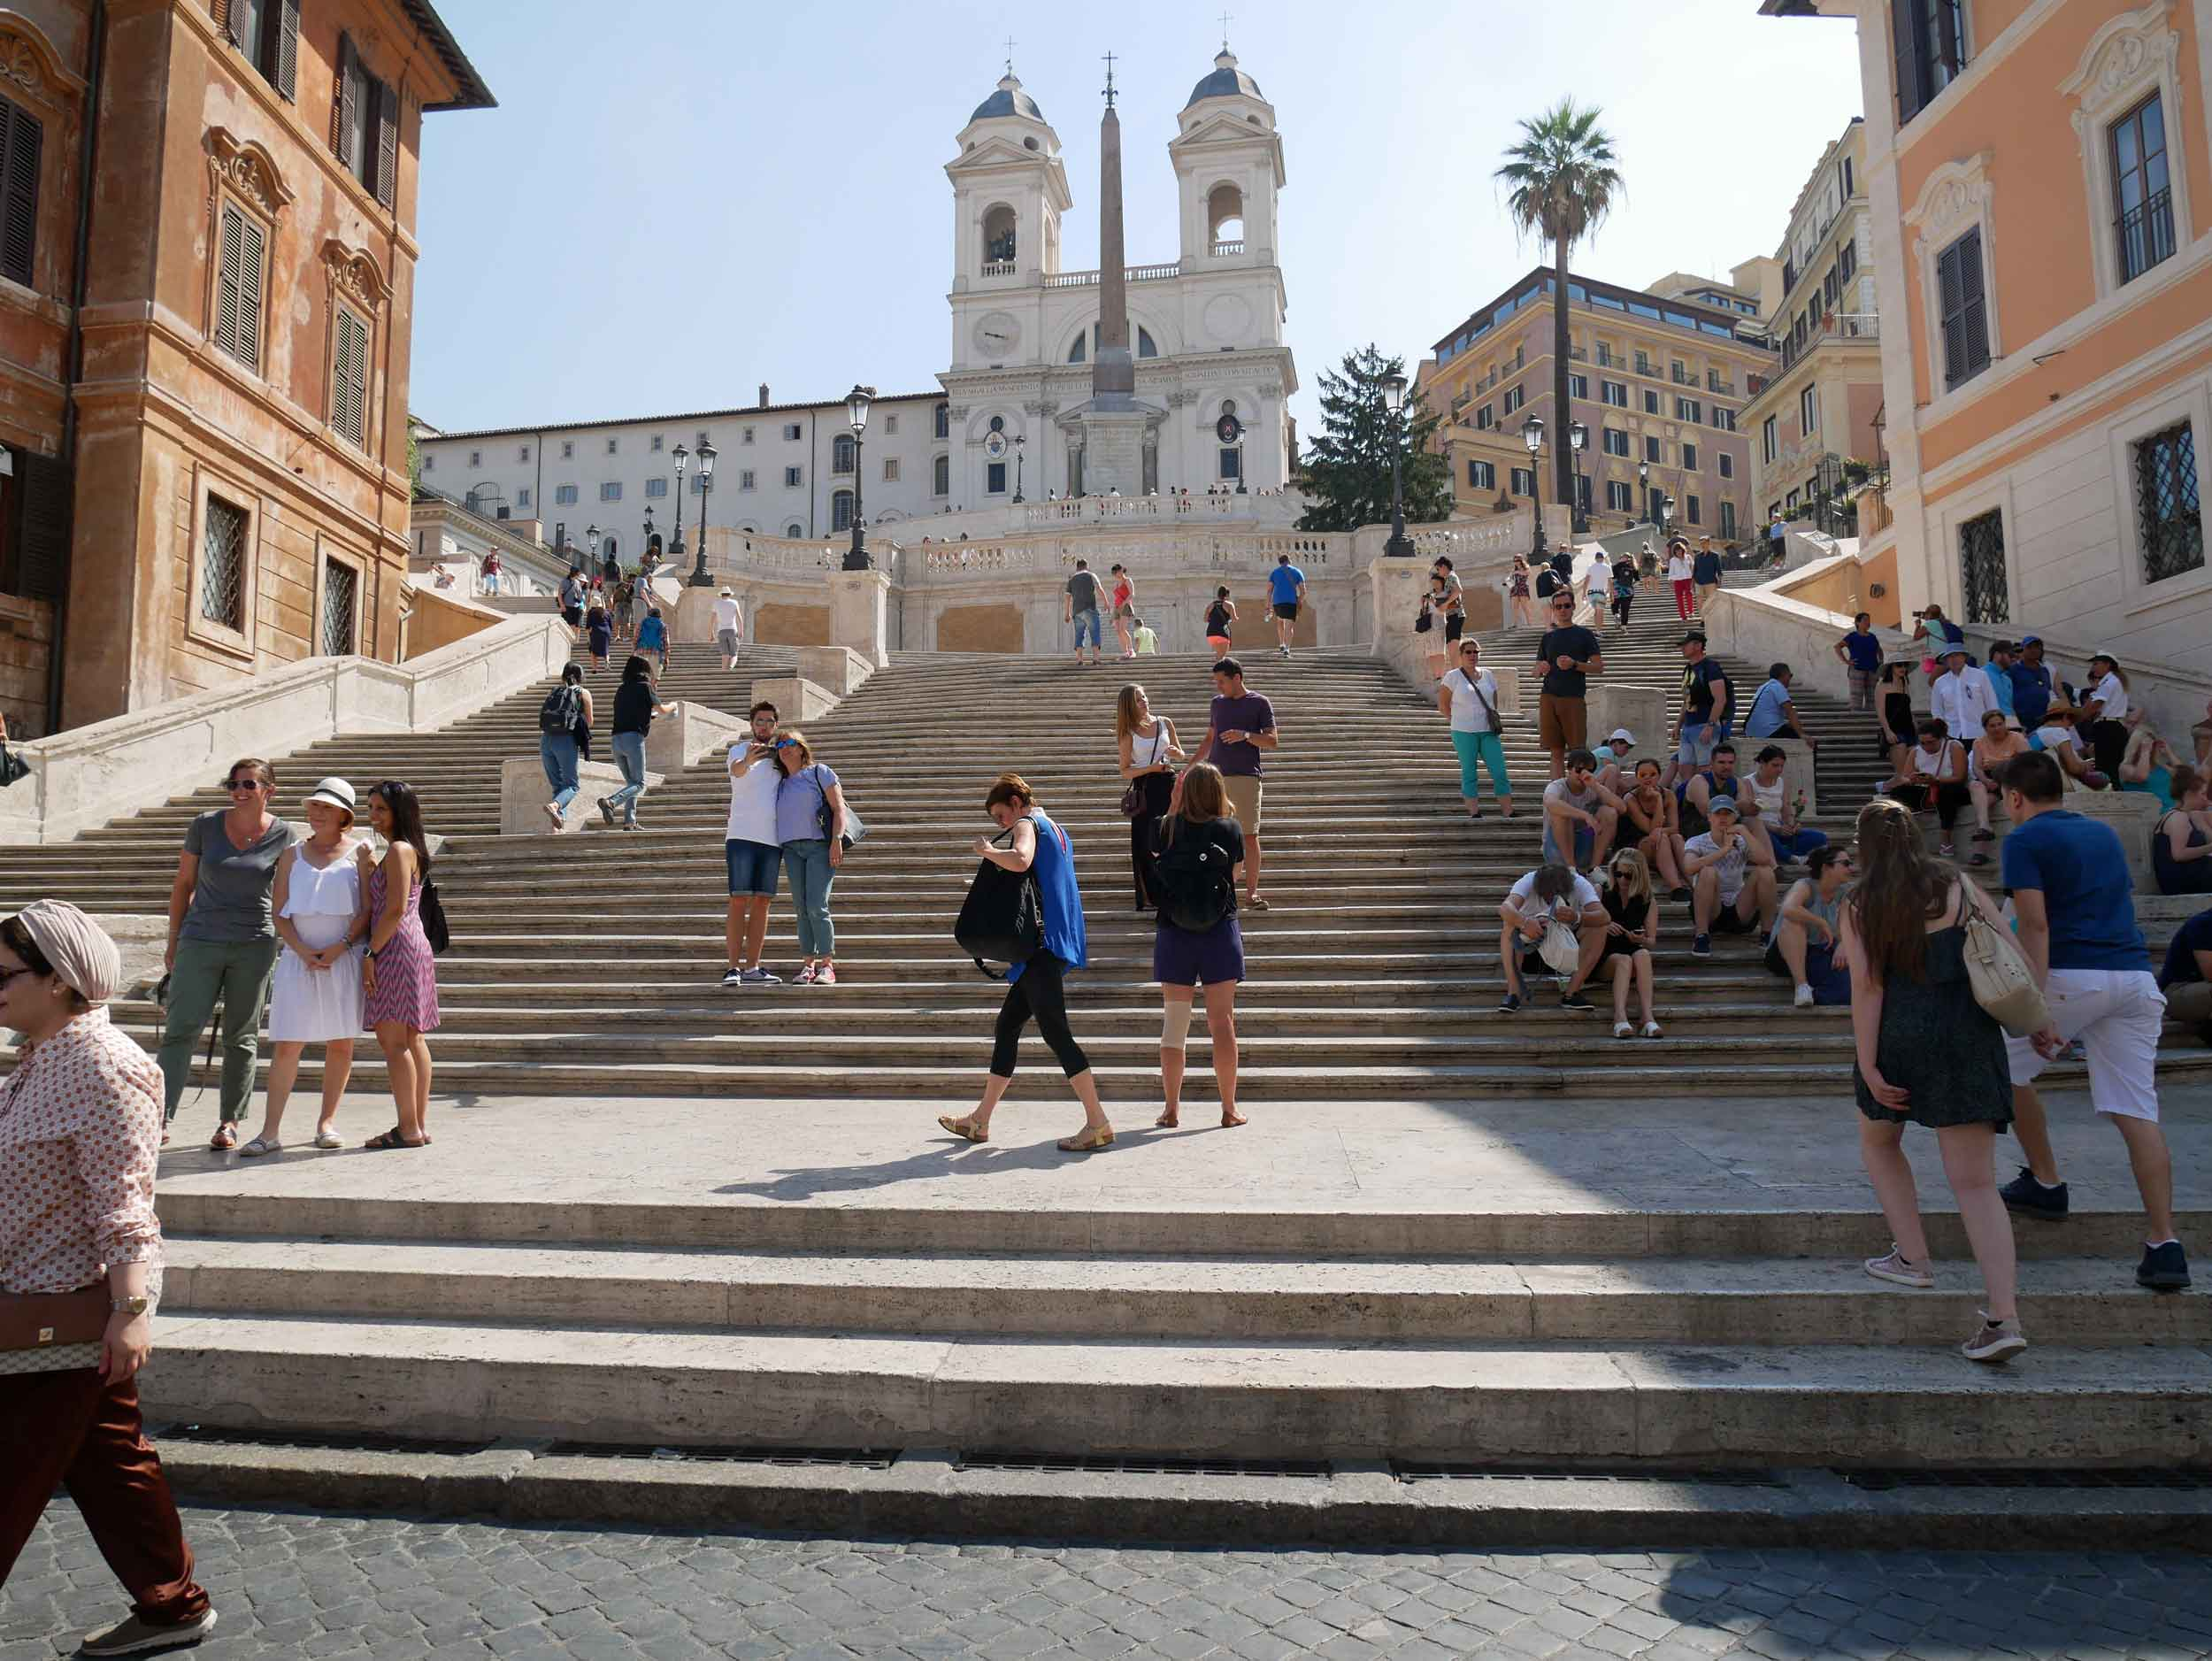 The next morning, we climbed the city's famed Spanish Steps along with many other tourists (July 14).